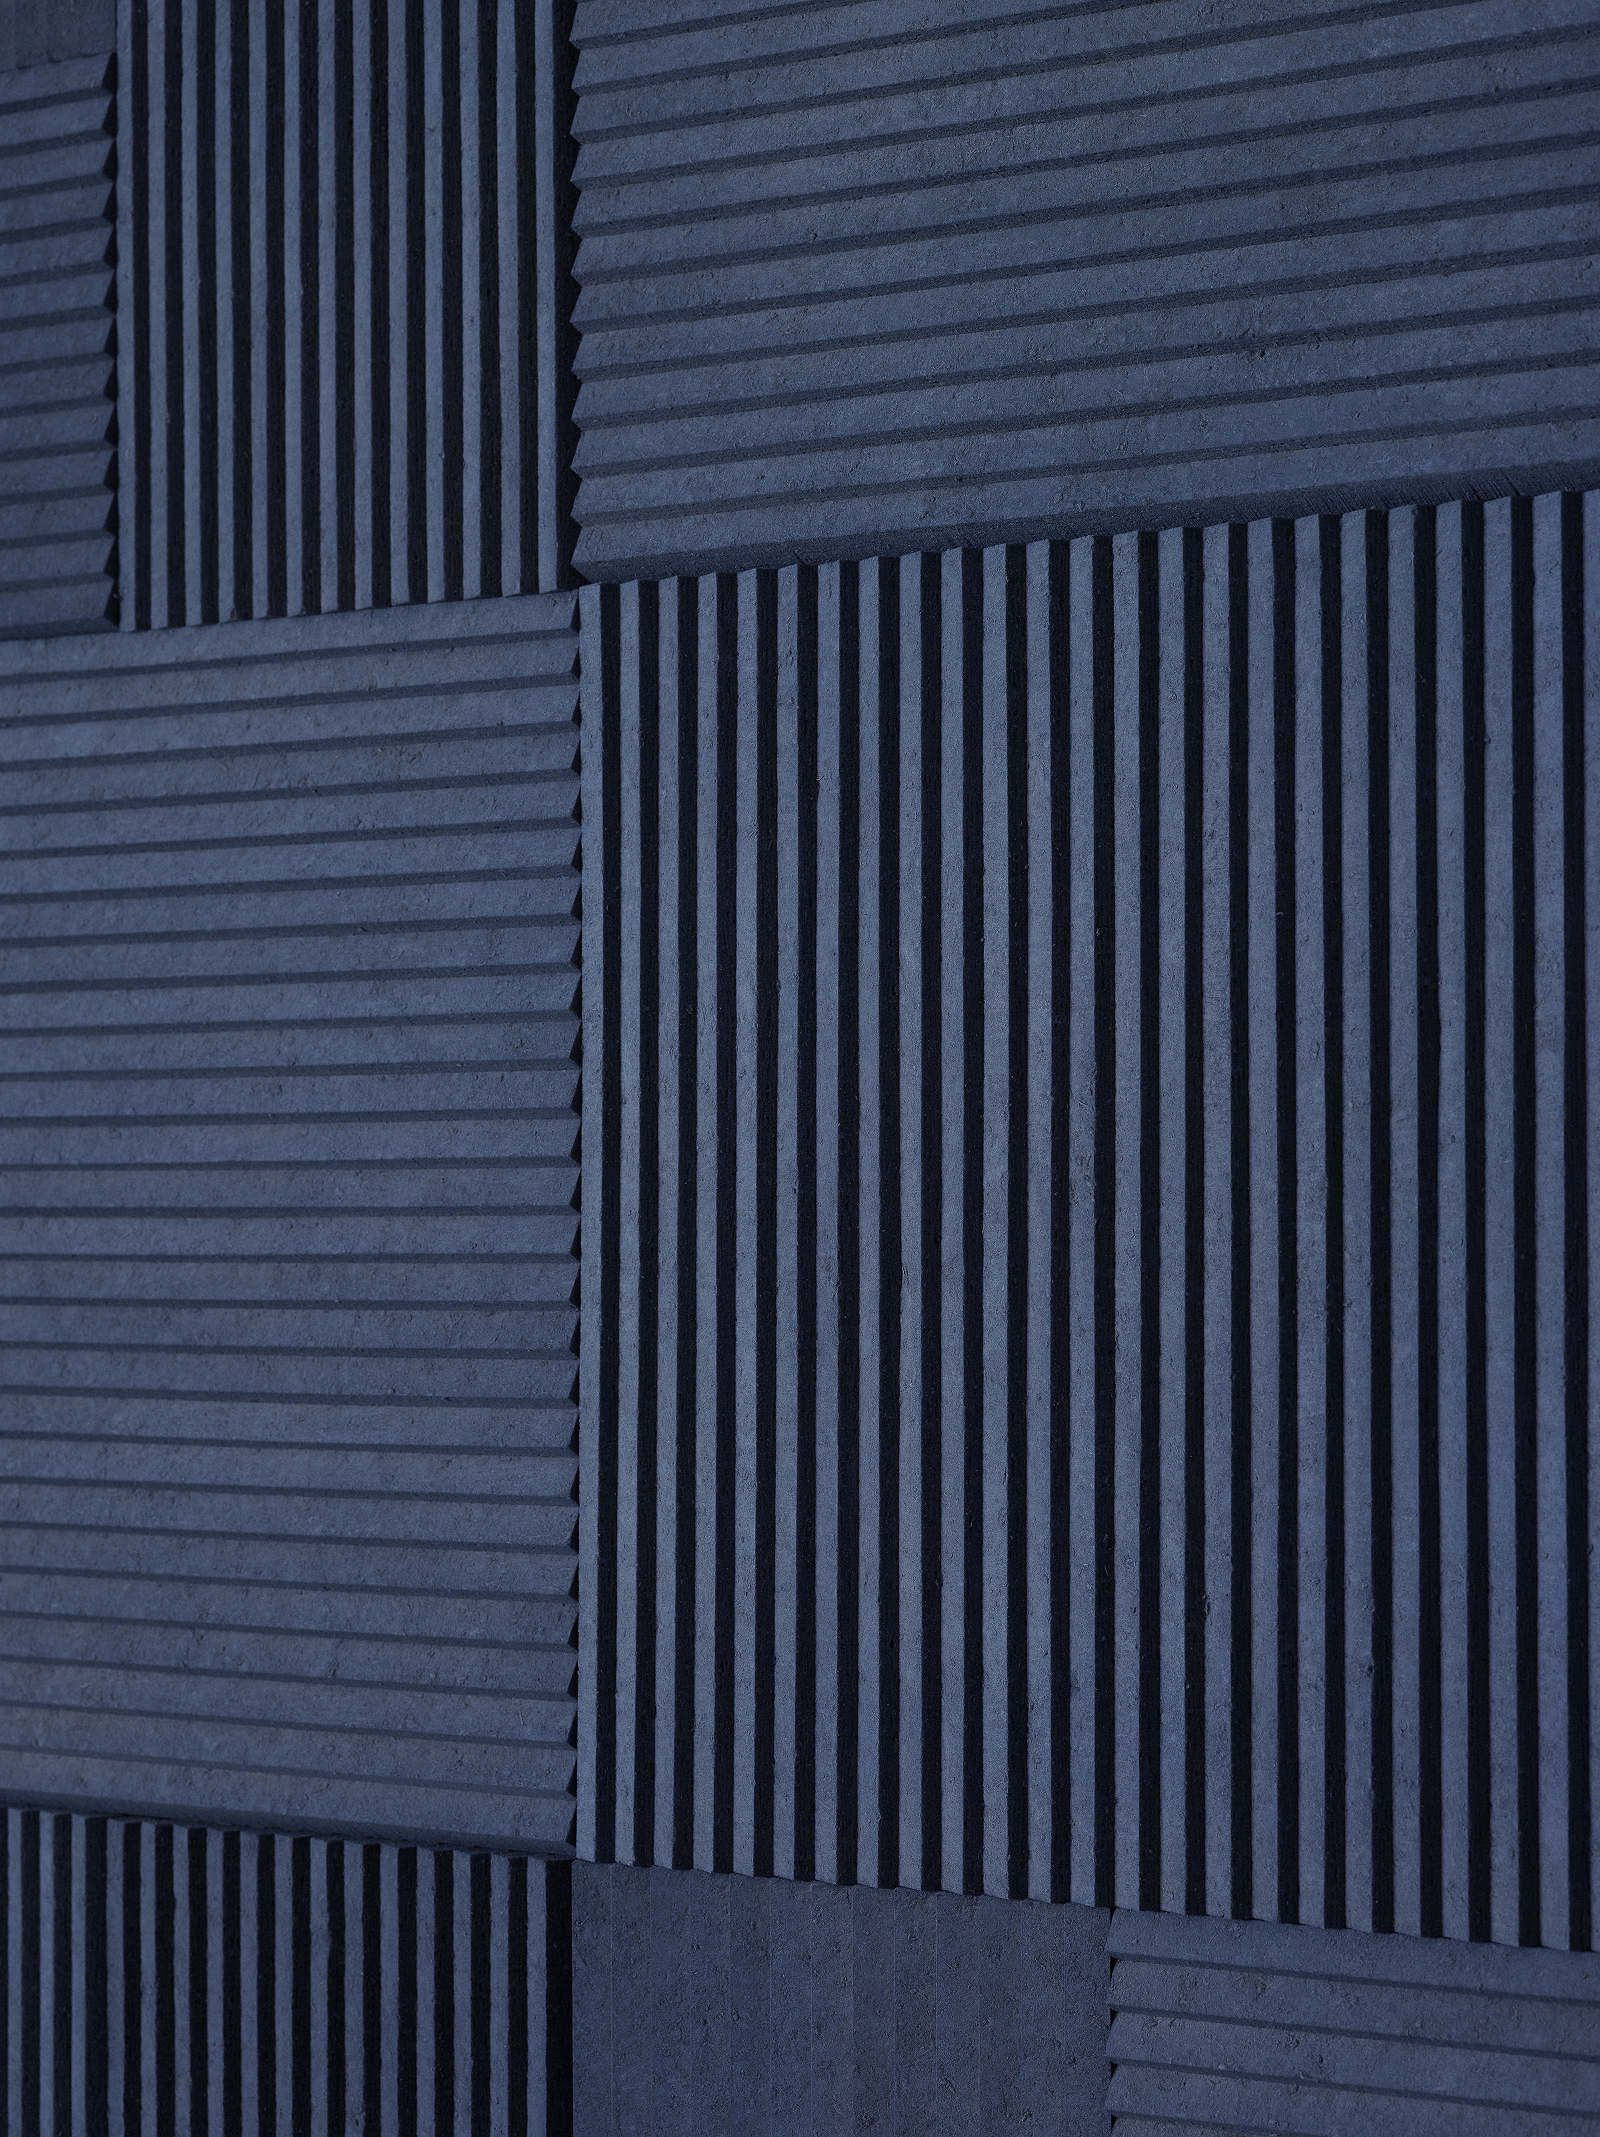 Rimpi is an acoustic wall panel for home and public spaces ...